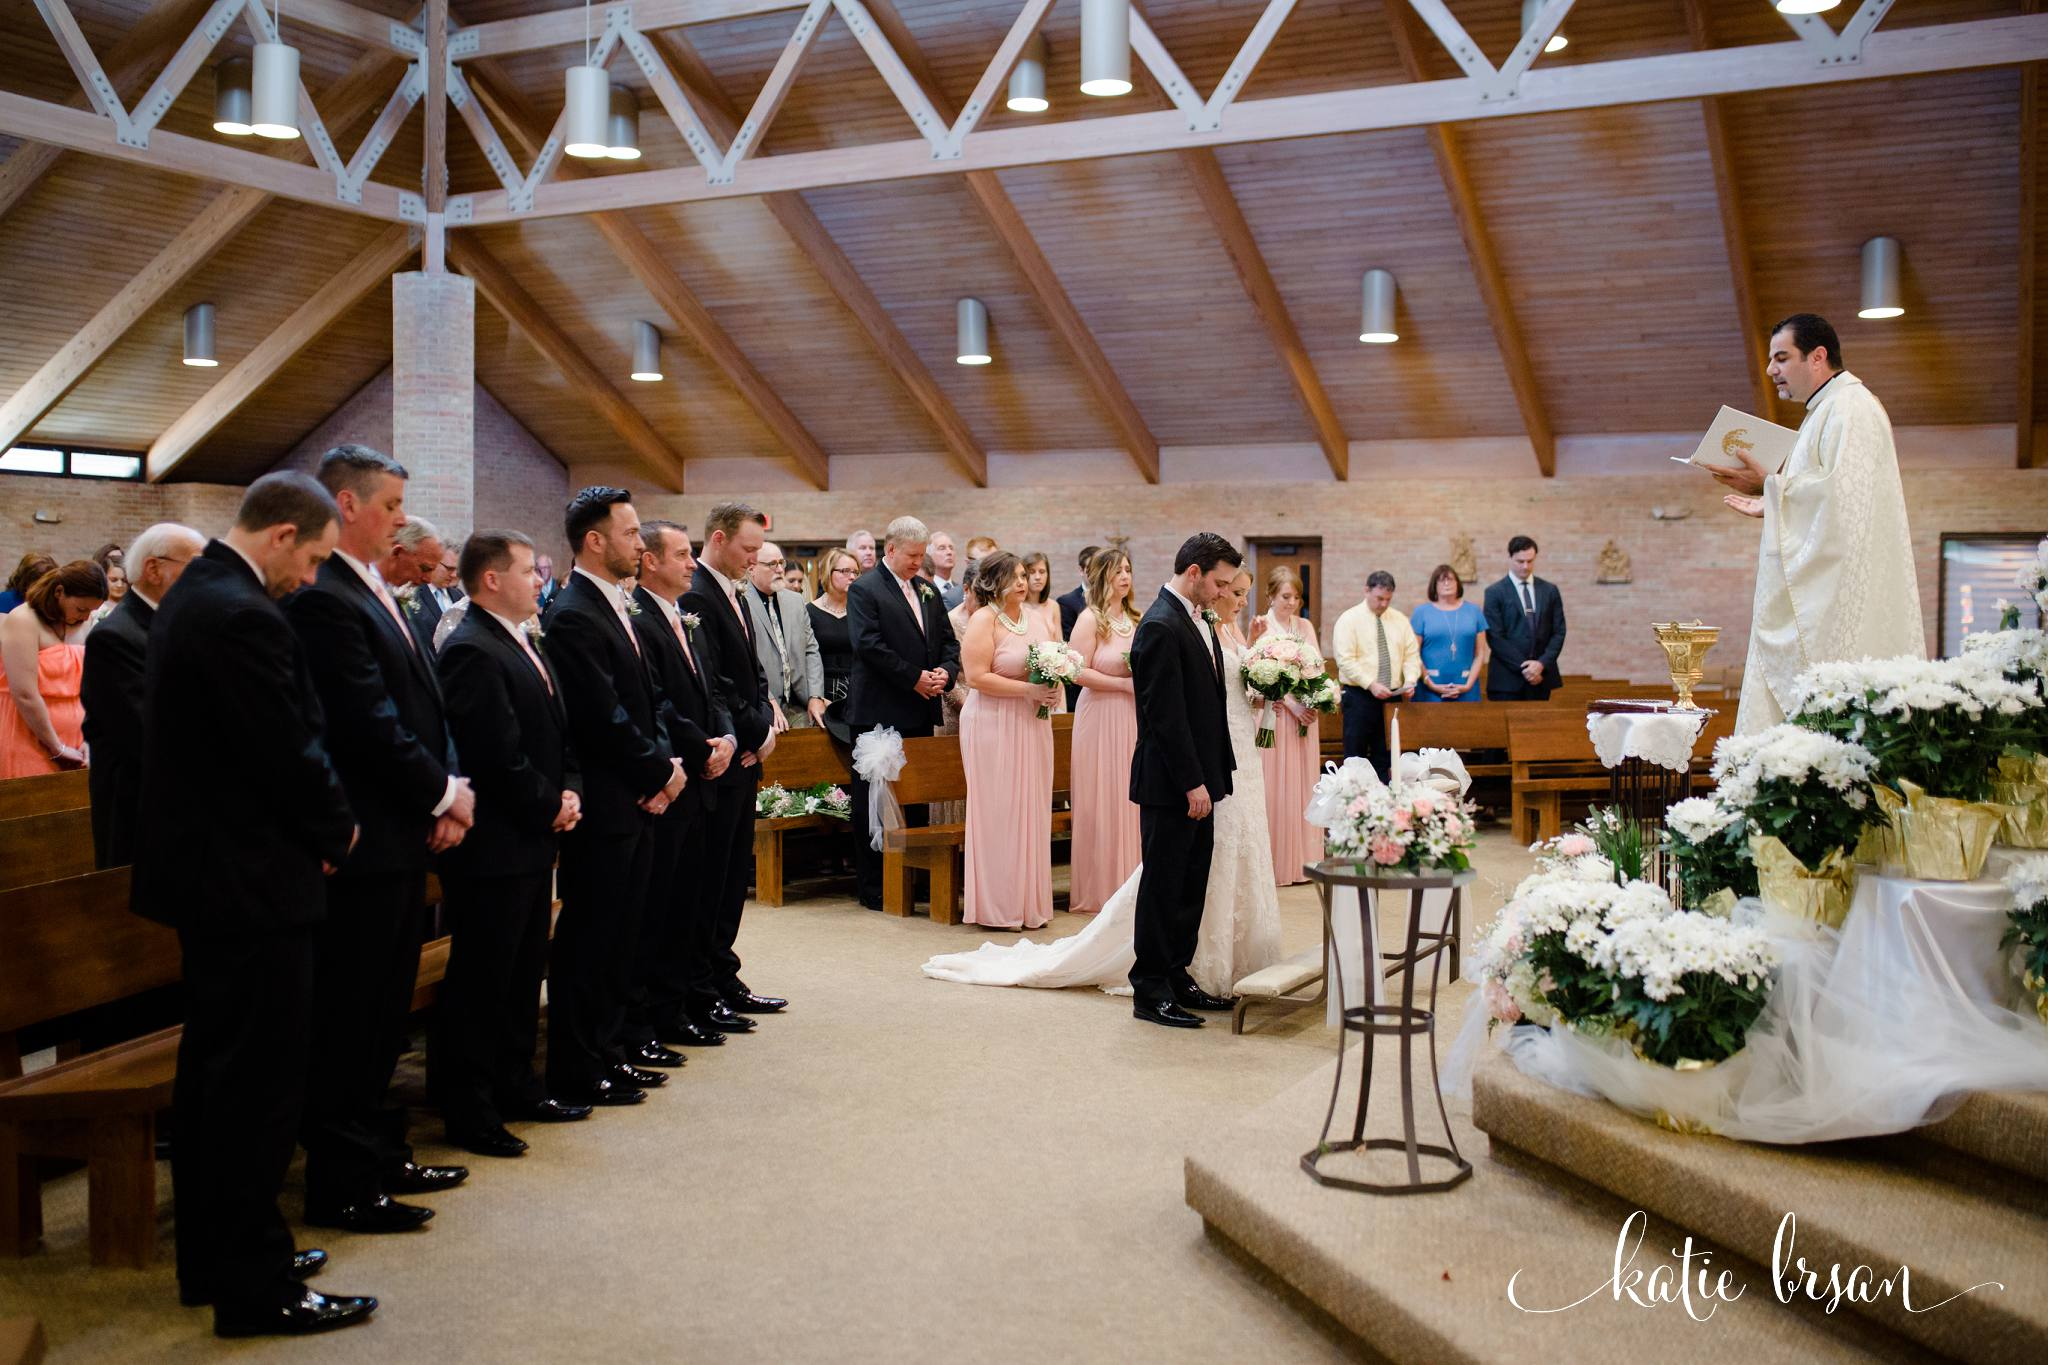 Mokena_Lemont_Wedding_Ruffled_Feathers_Wedding_1350.jpg